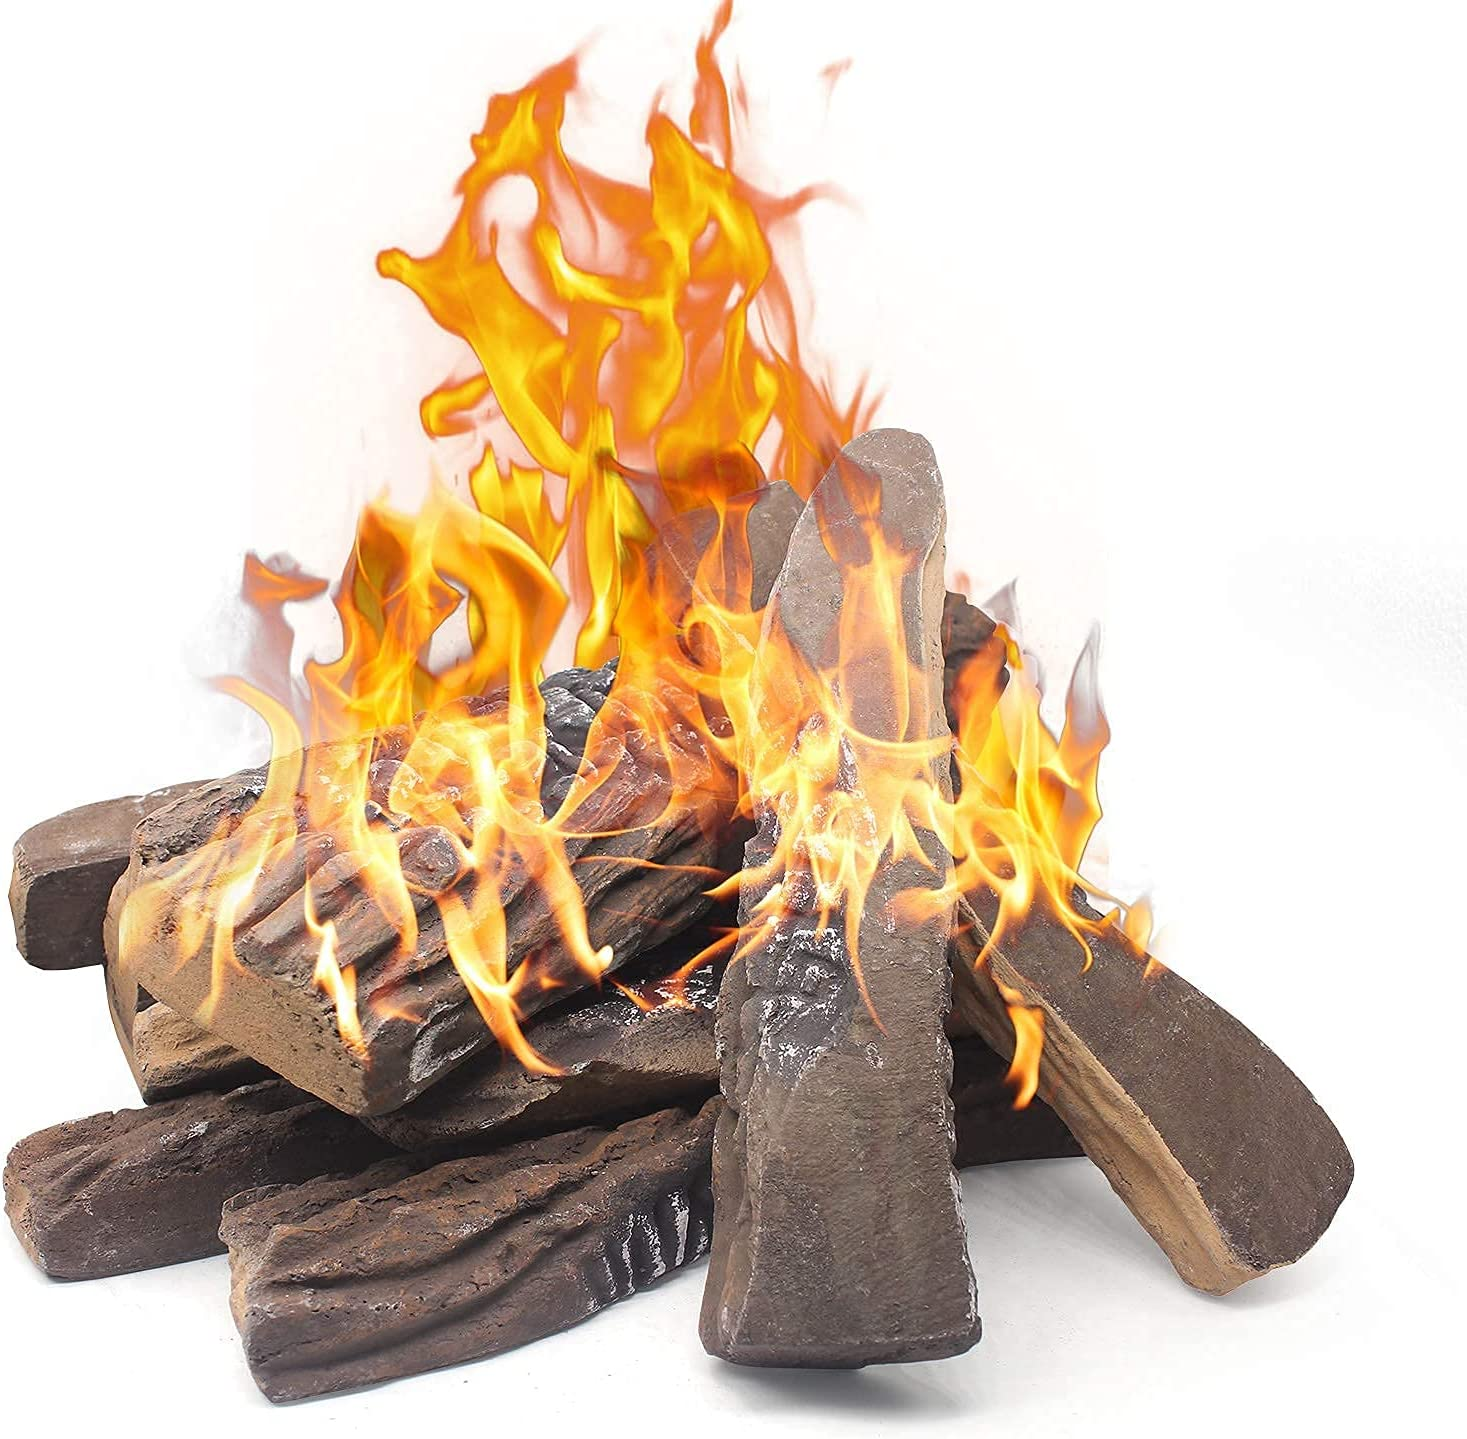 Gas Fireplace Logs,20pcs Large Faux Firepit Logs, Decorative Ceramic Wood  Log Set for Indoor Outdoor Gas Insets, Vented,Ventless,  Electric,Ethanol,Gel ...